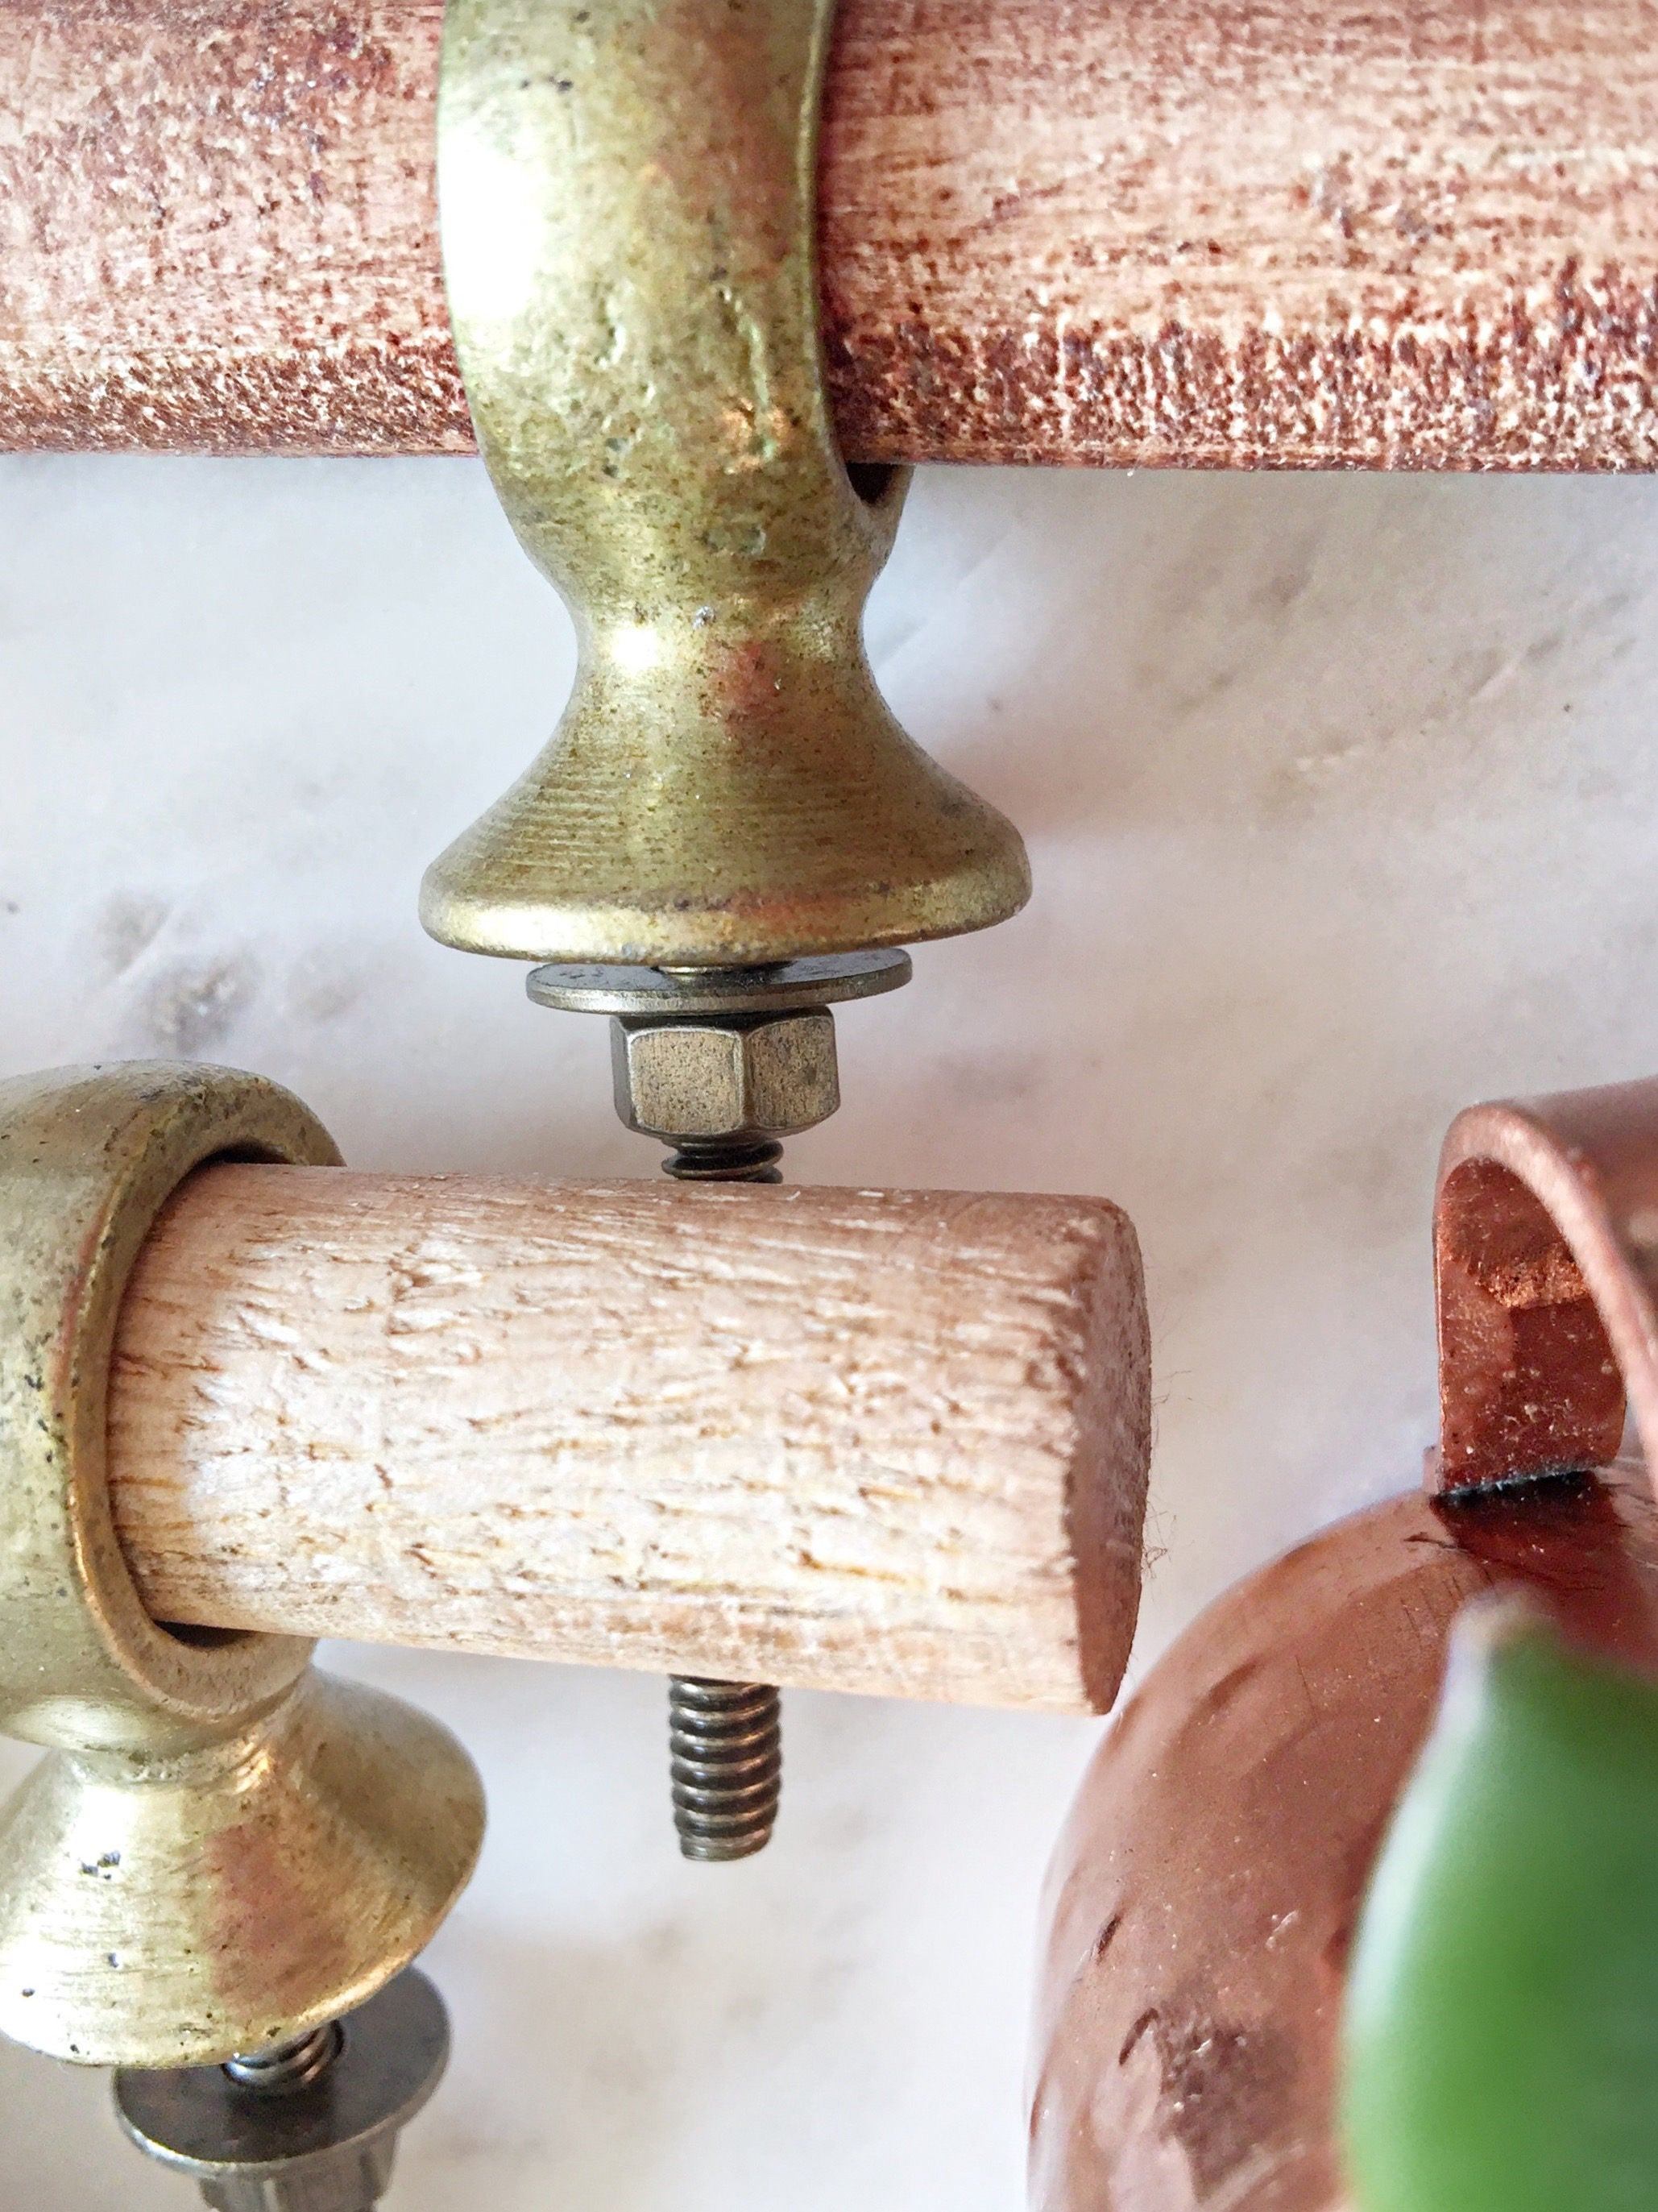 anthropologie ideas junk of knob fabulous and hardware my resources pulls refunk drawer image knobs